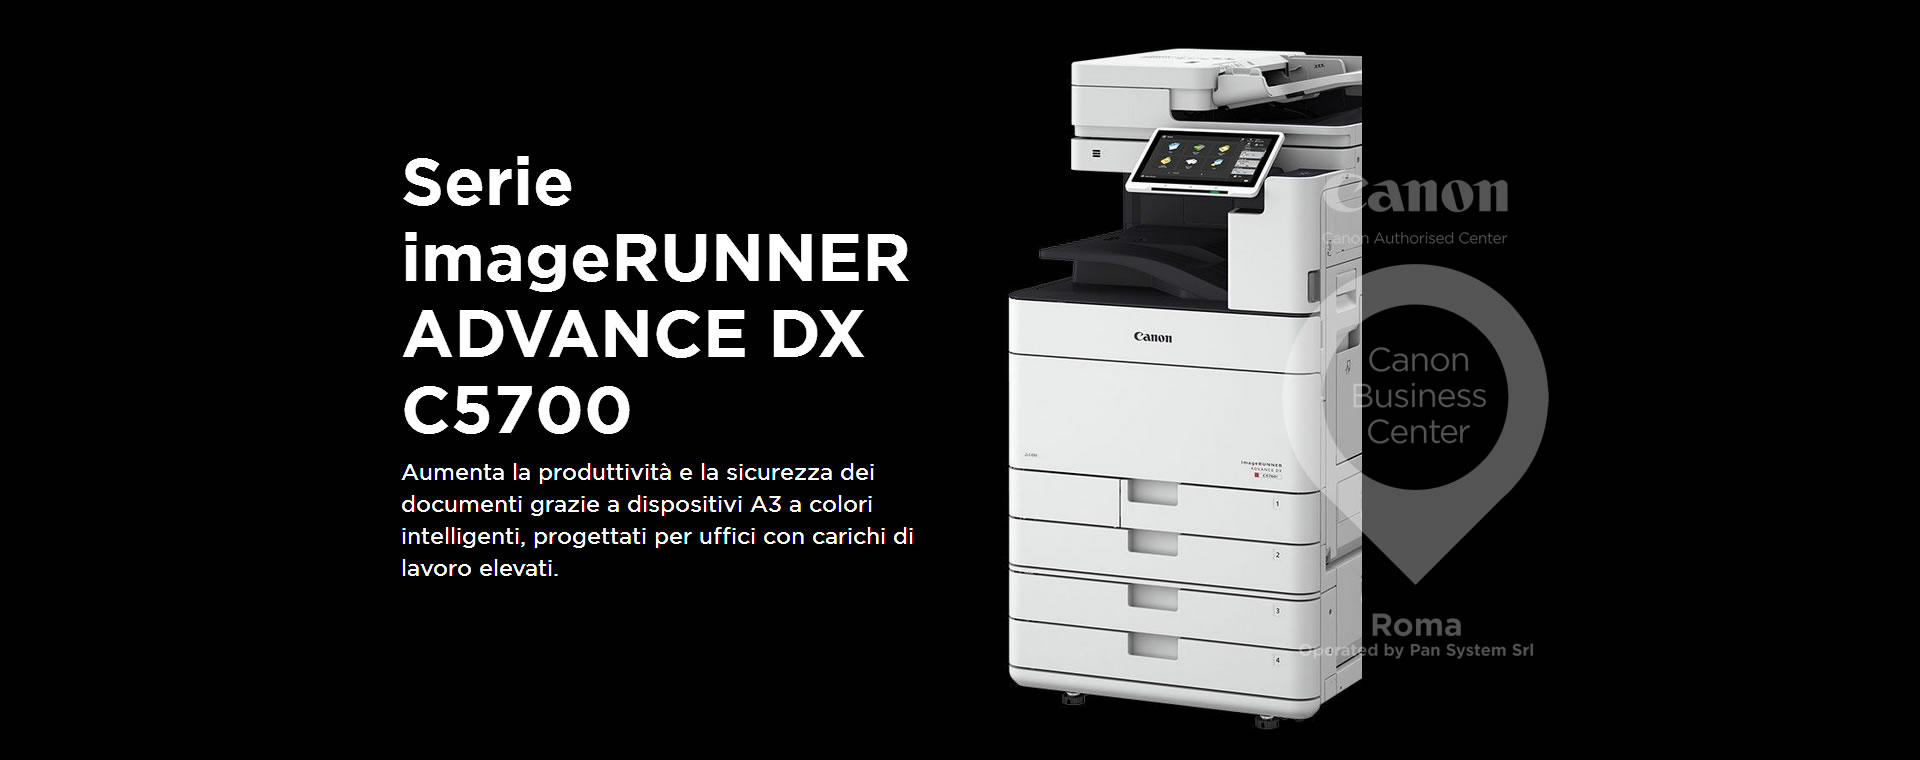 imageRUNNER ADVANCE DX C5700